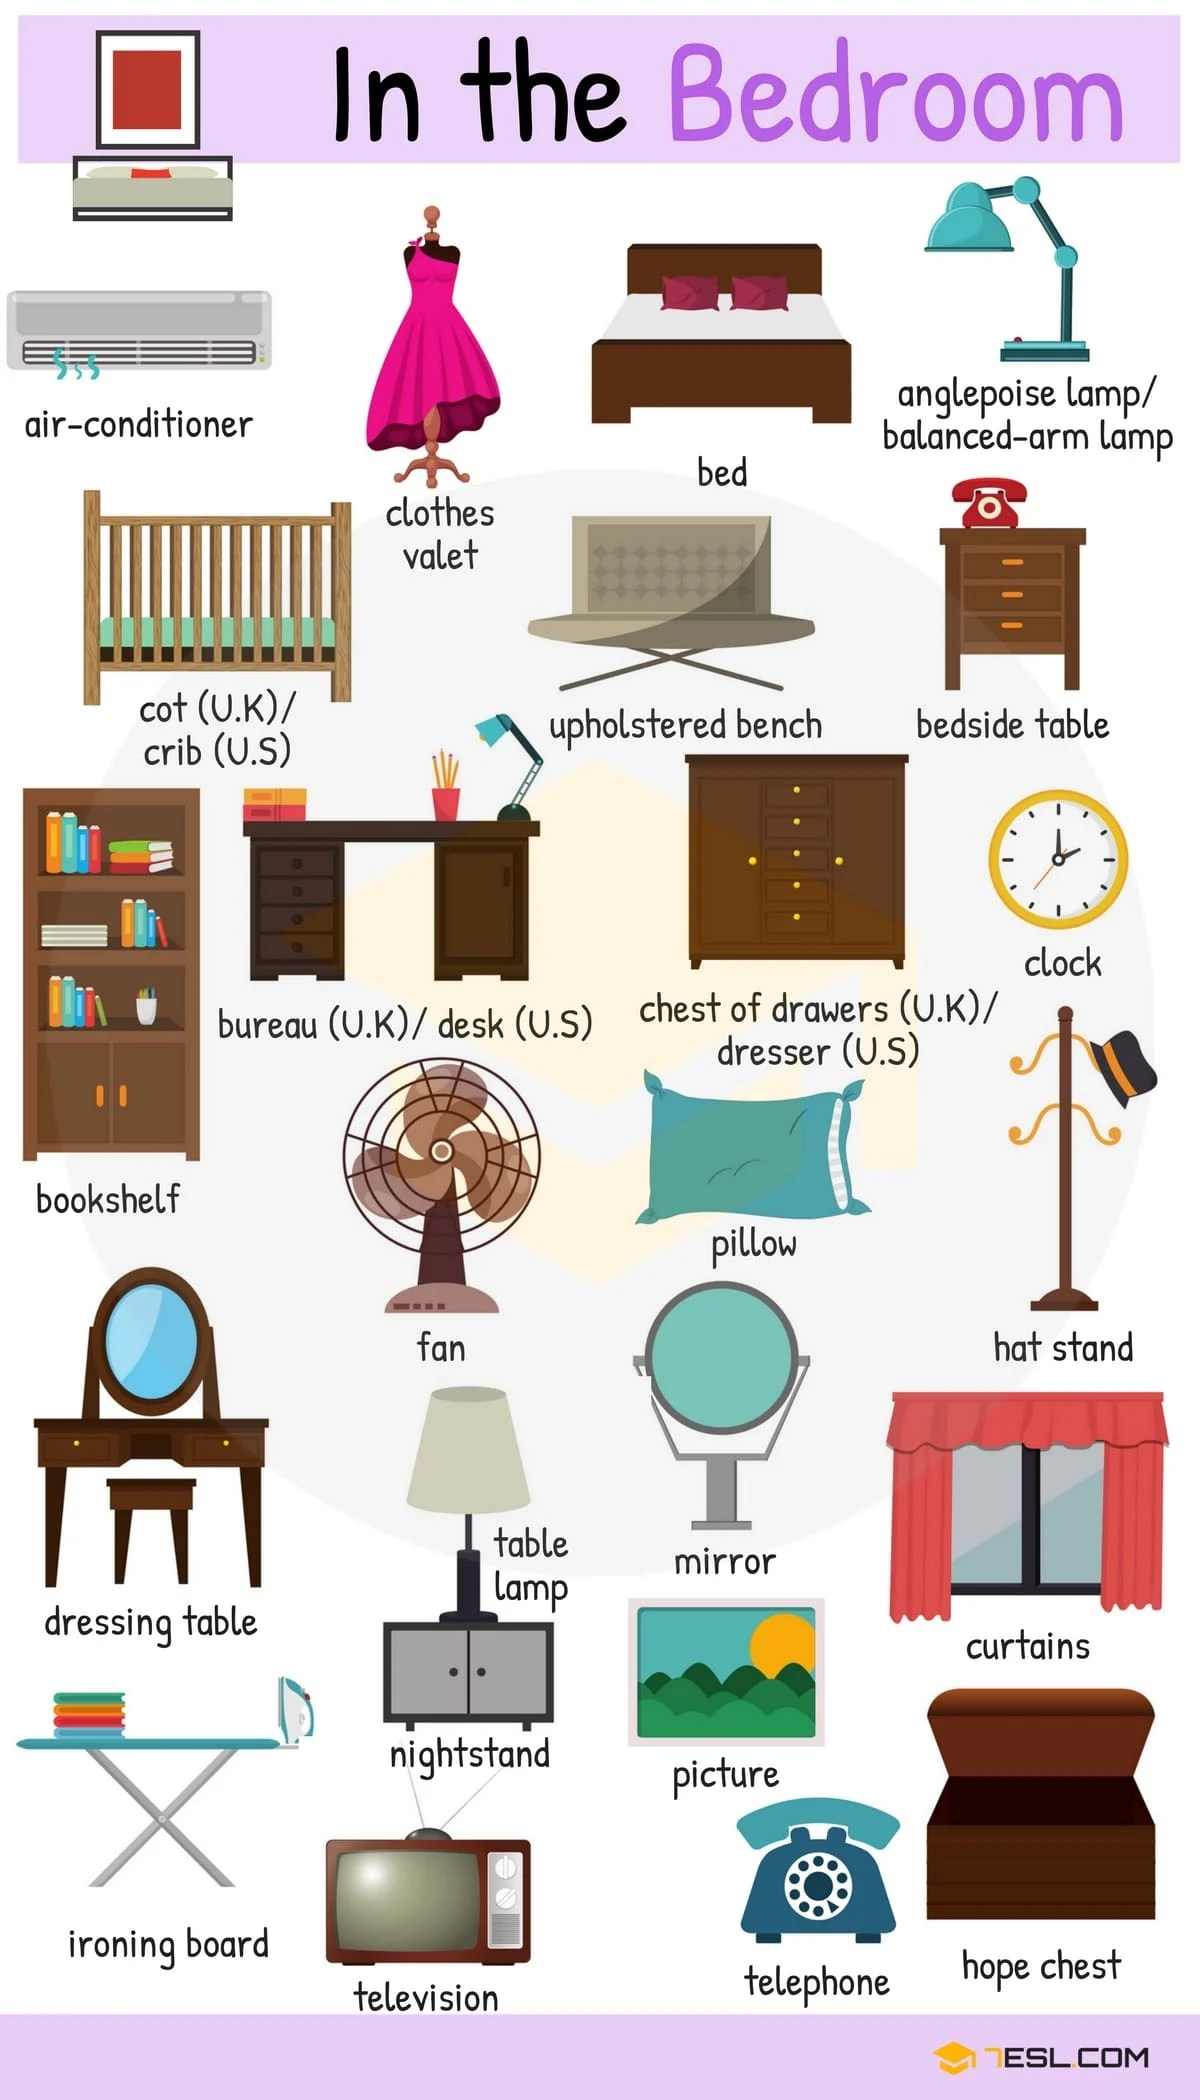 Rooms in a House Vocabulary in English - ESLBuzz Learning English